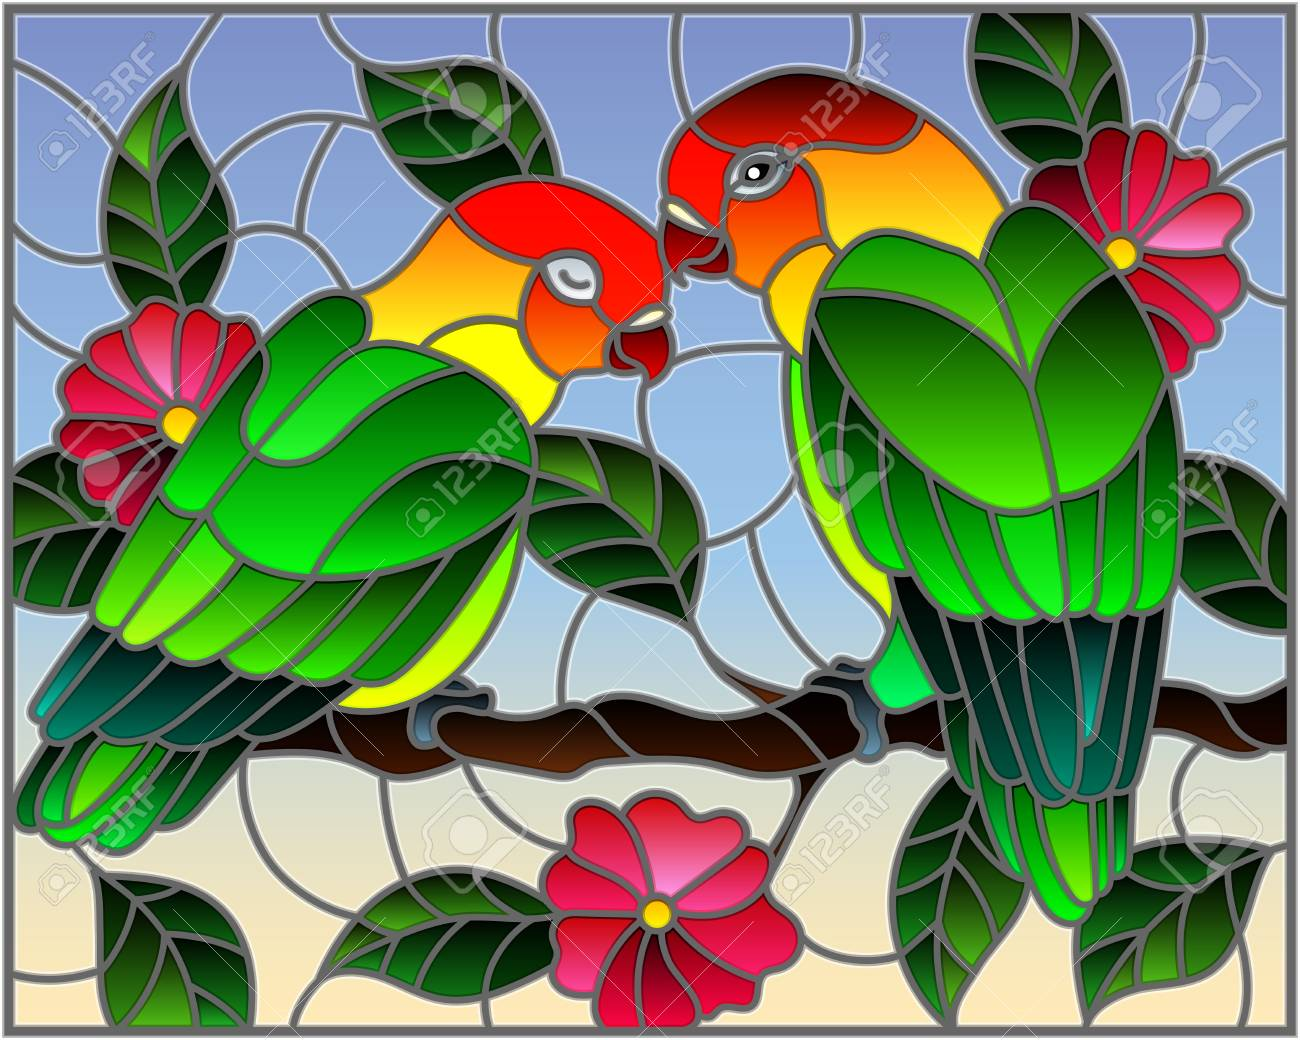 Illustration In Stained Glass Style With Pair Of Birds Parrots Royalty Free Cliparts Vectors And Stock Illustration Image 102999620